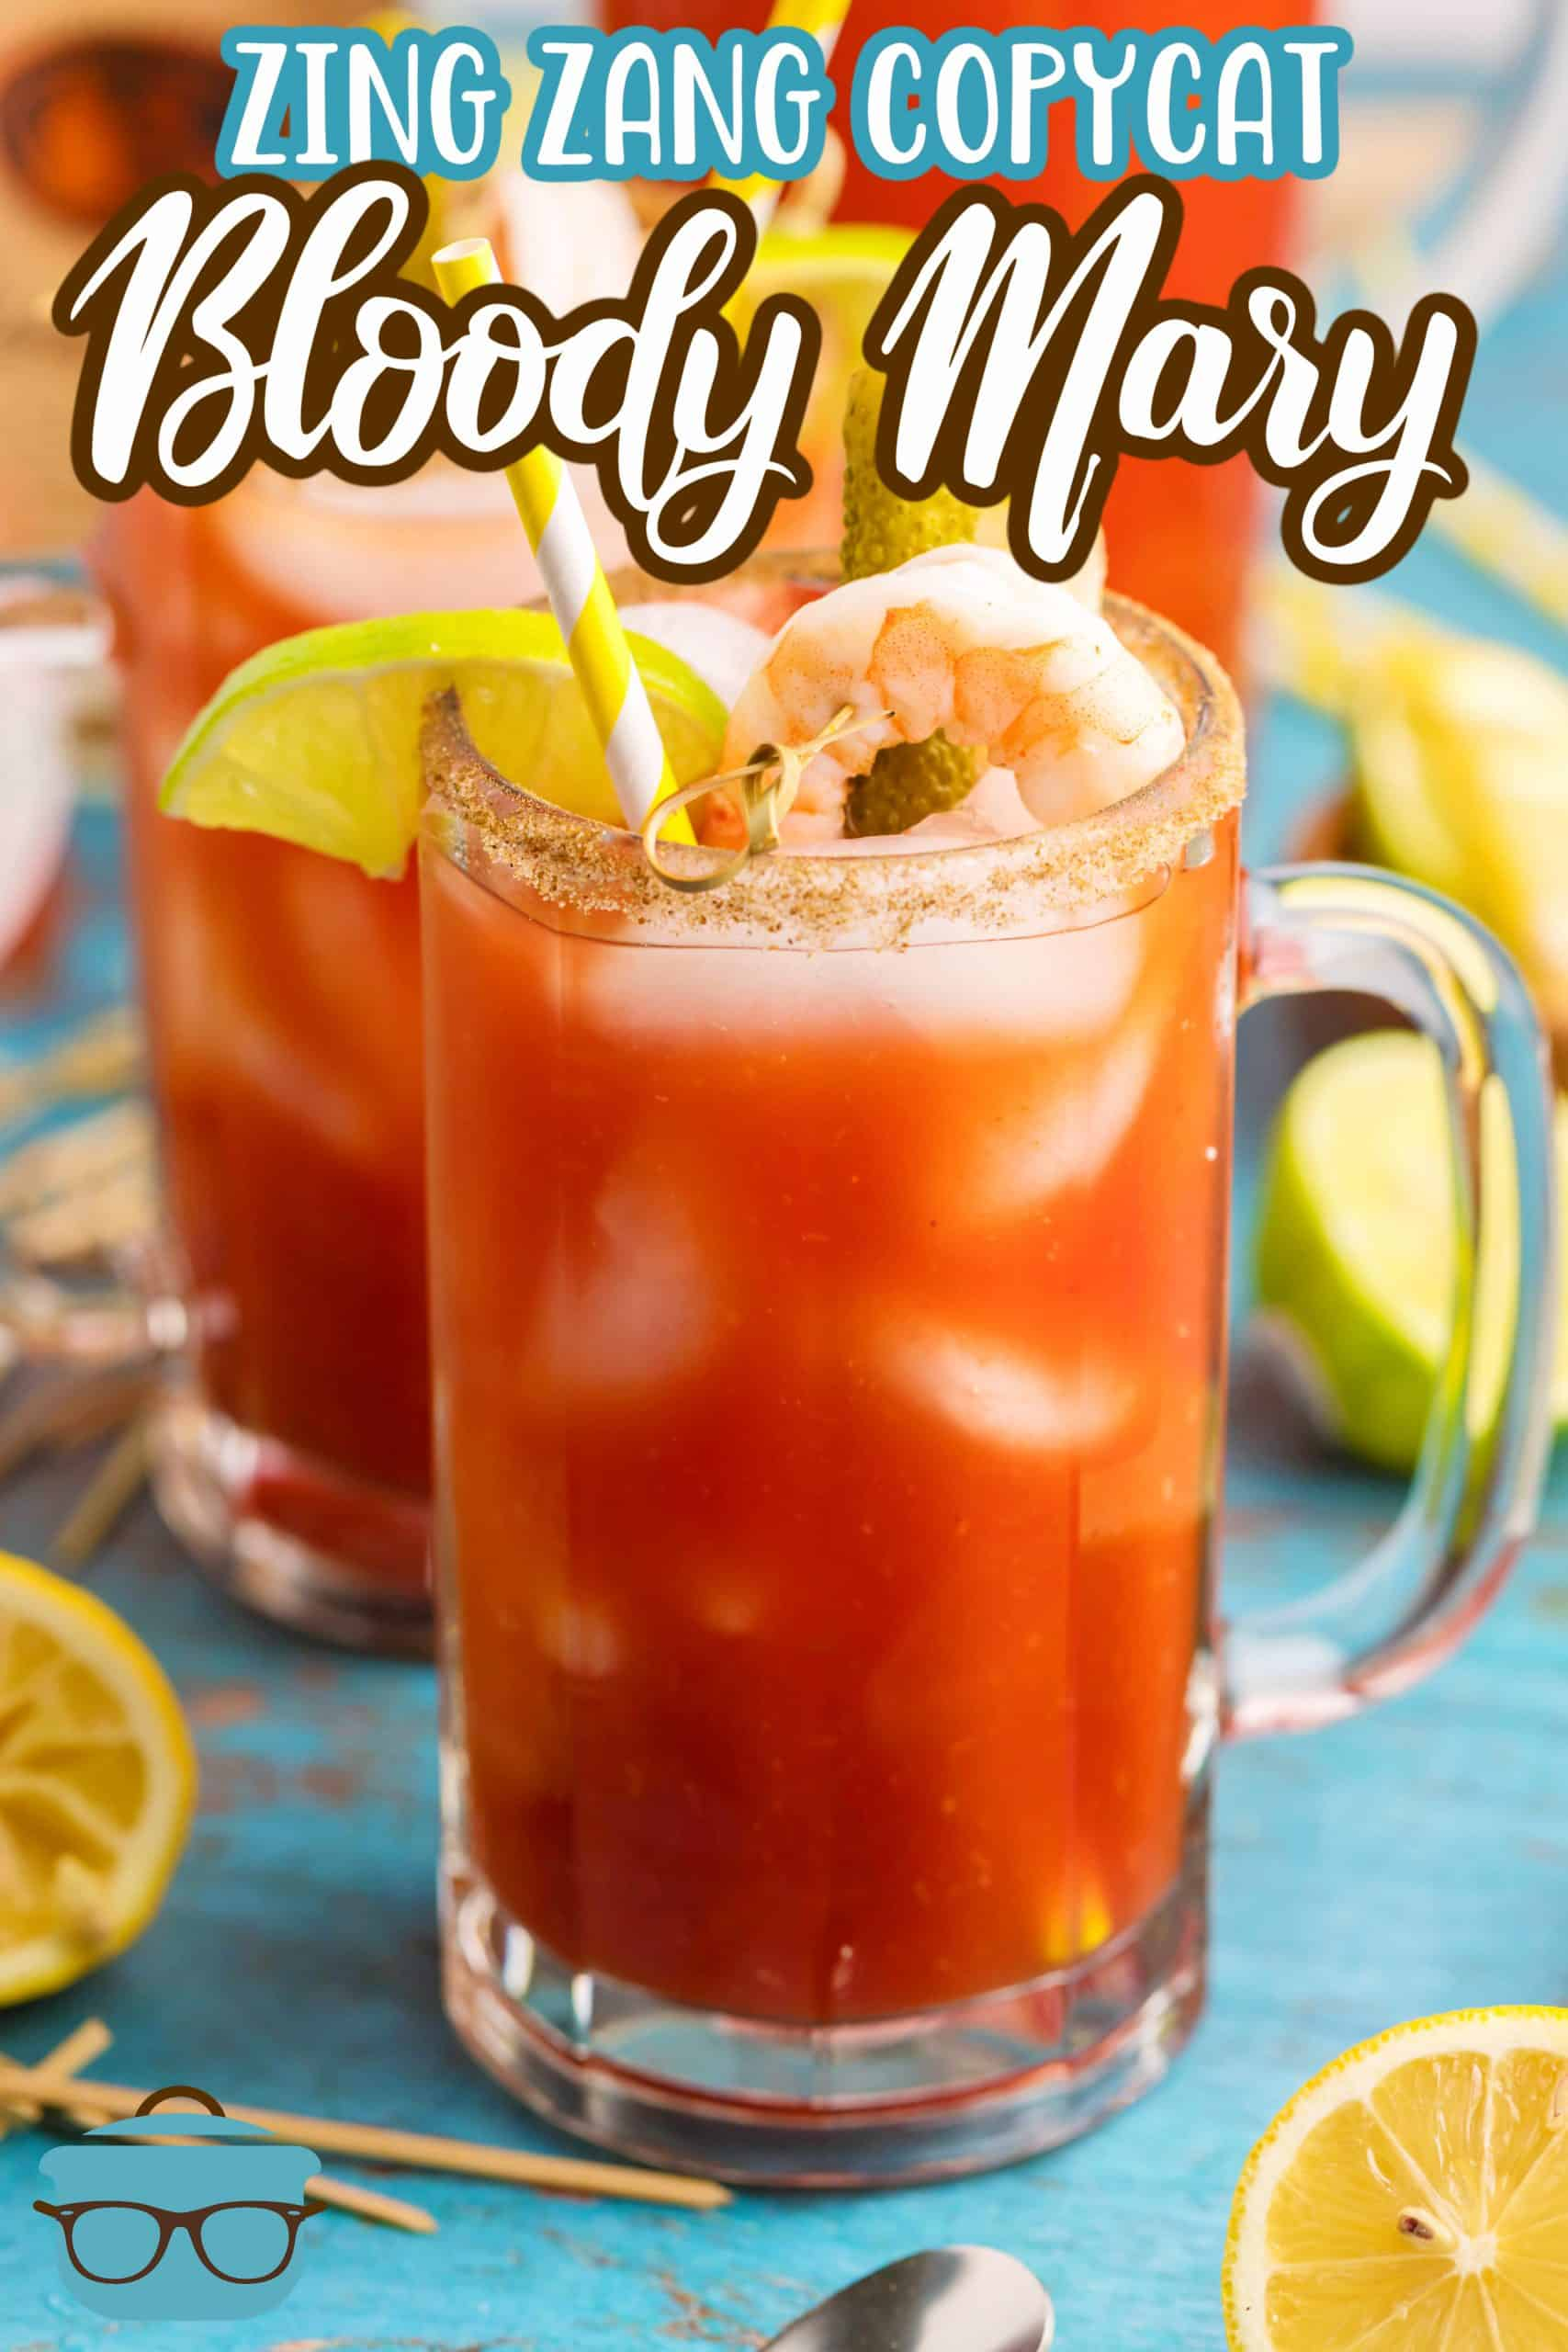 Looking for that perfect Sunday Brunch drink? You can't go wrong with this tasty Bloody Mary Mix! Quick to put together and even easier to drink!